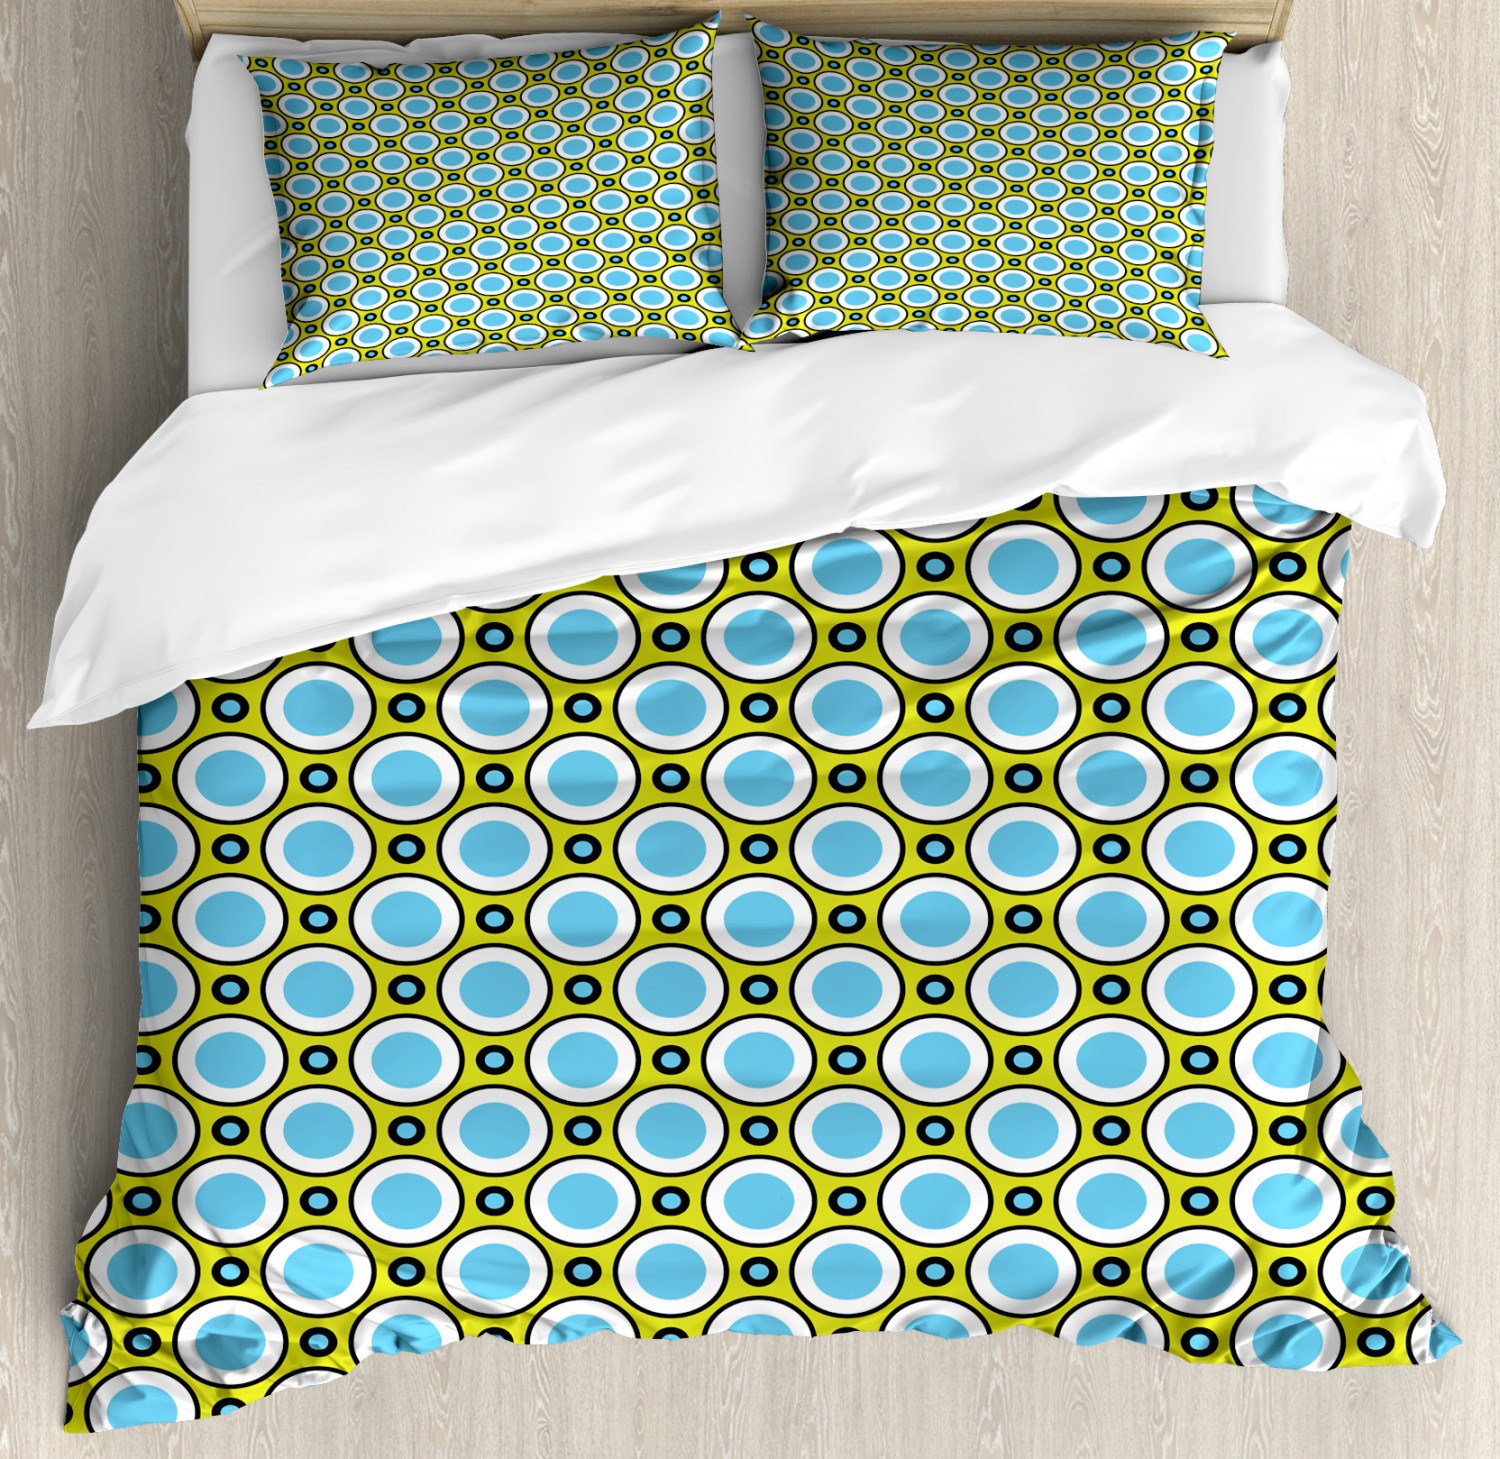 Geometric Duvet Cover Set with Pillow Shams Retro Circle and Dots Print